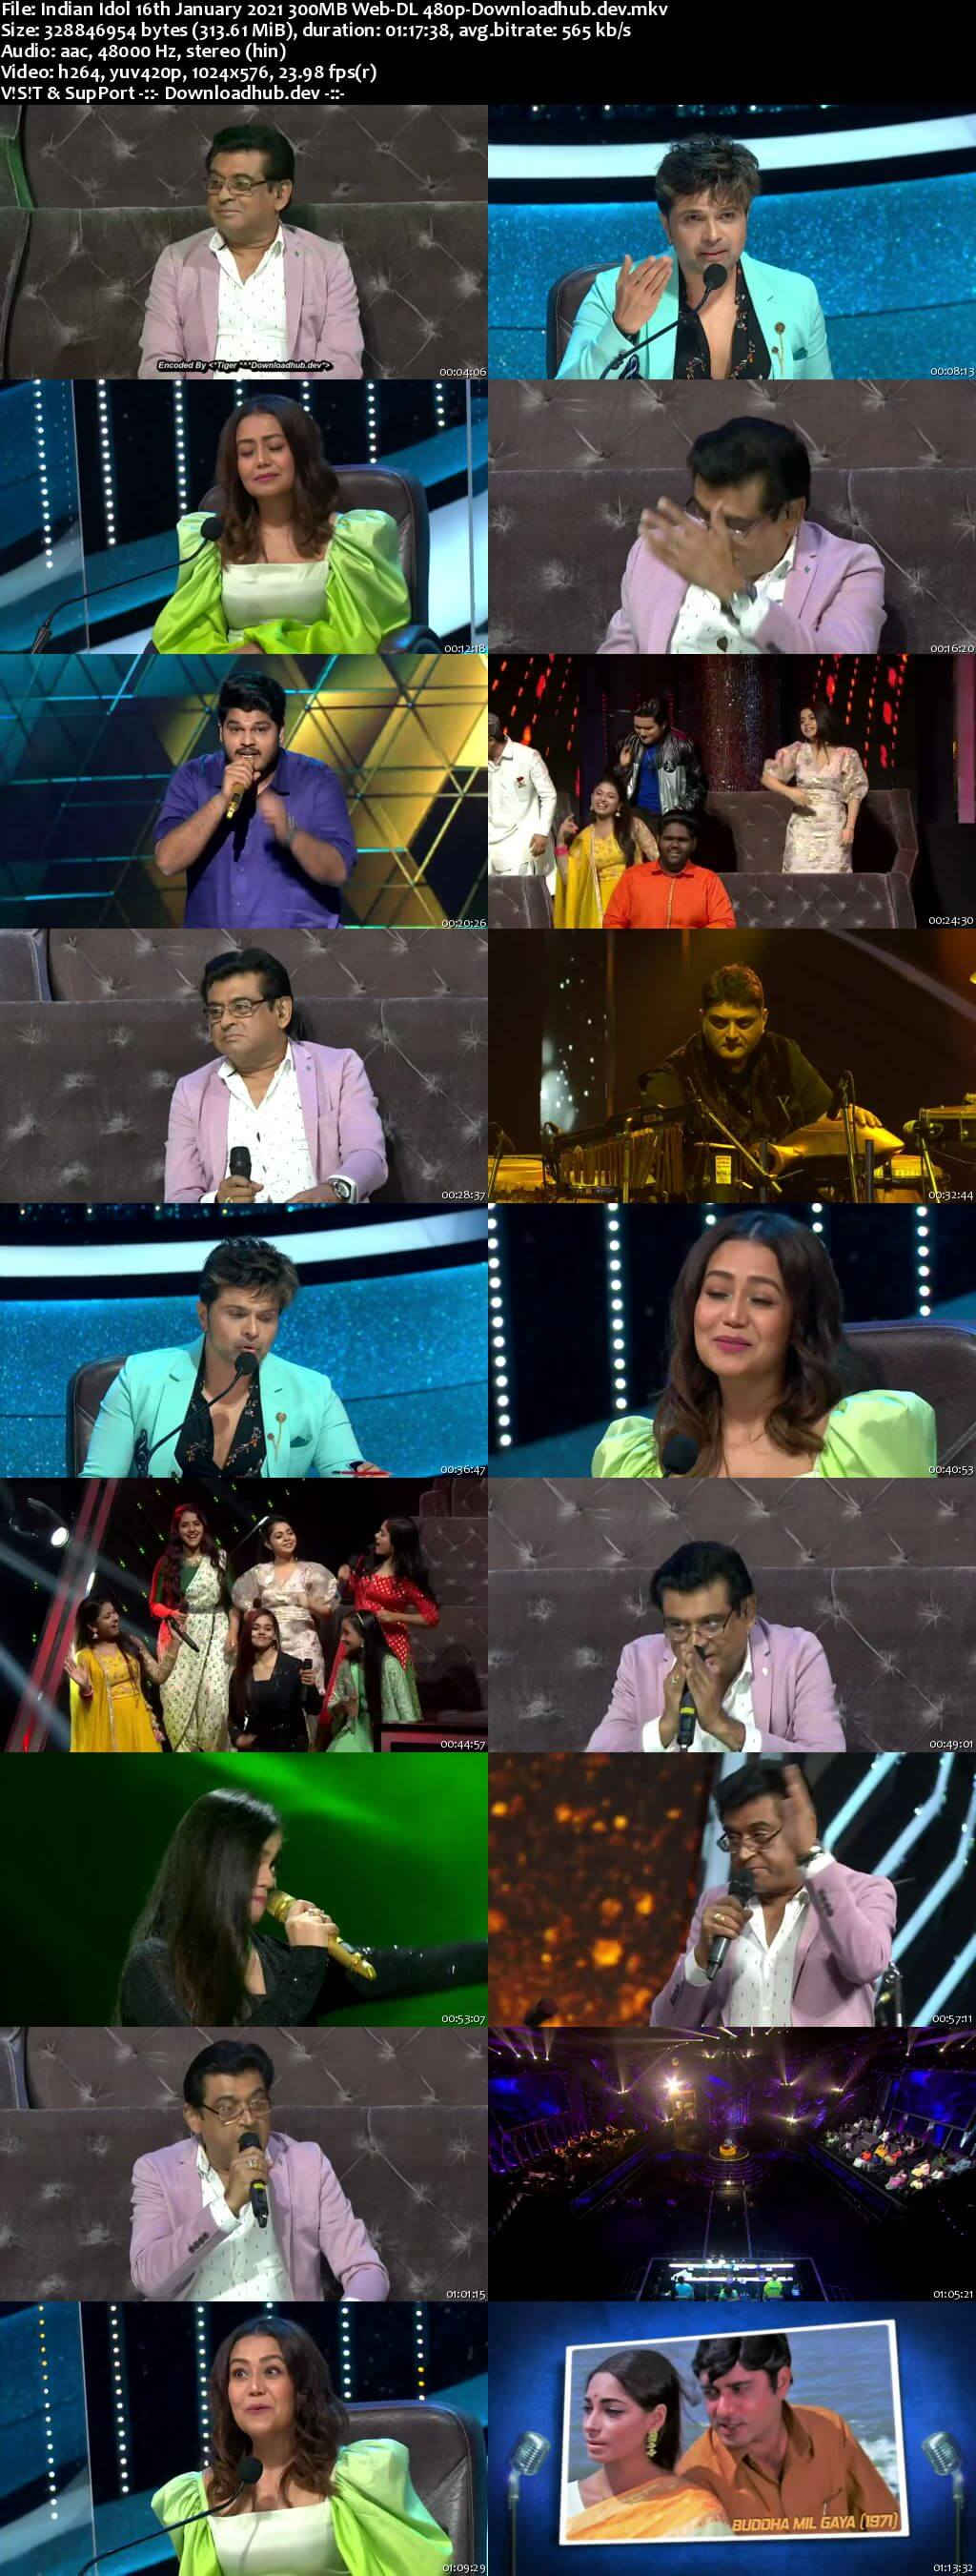 Indian Idol 16 January 2021 Episode 15 Web-DL 480p